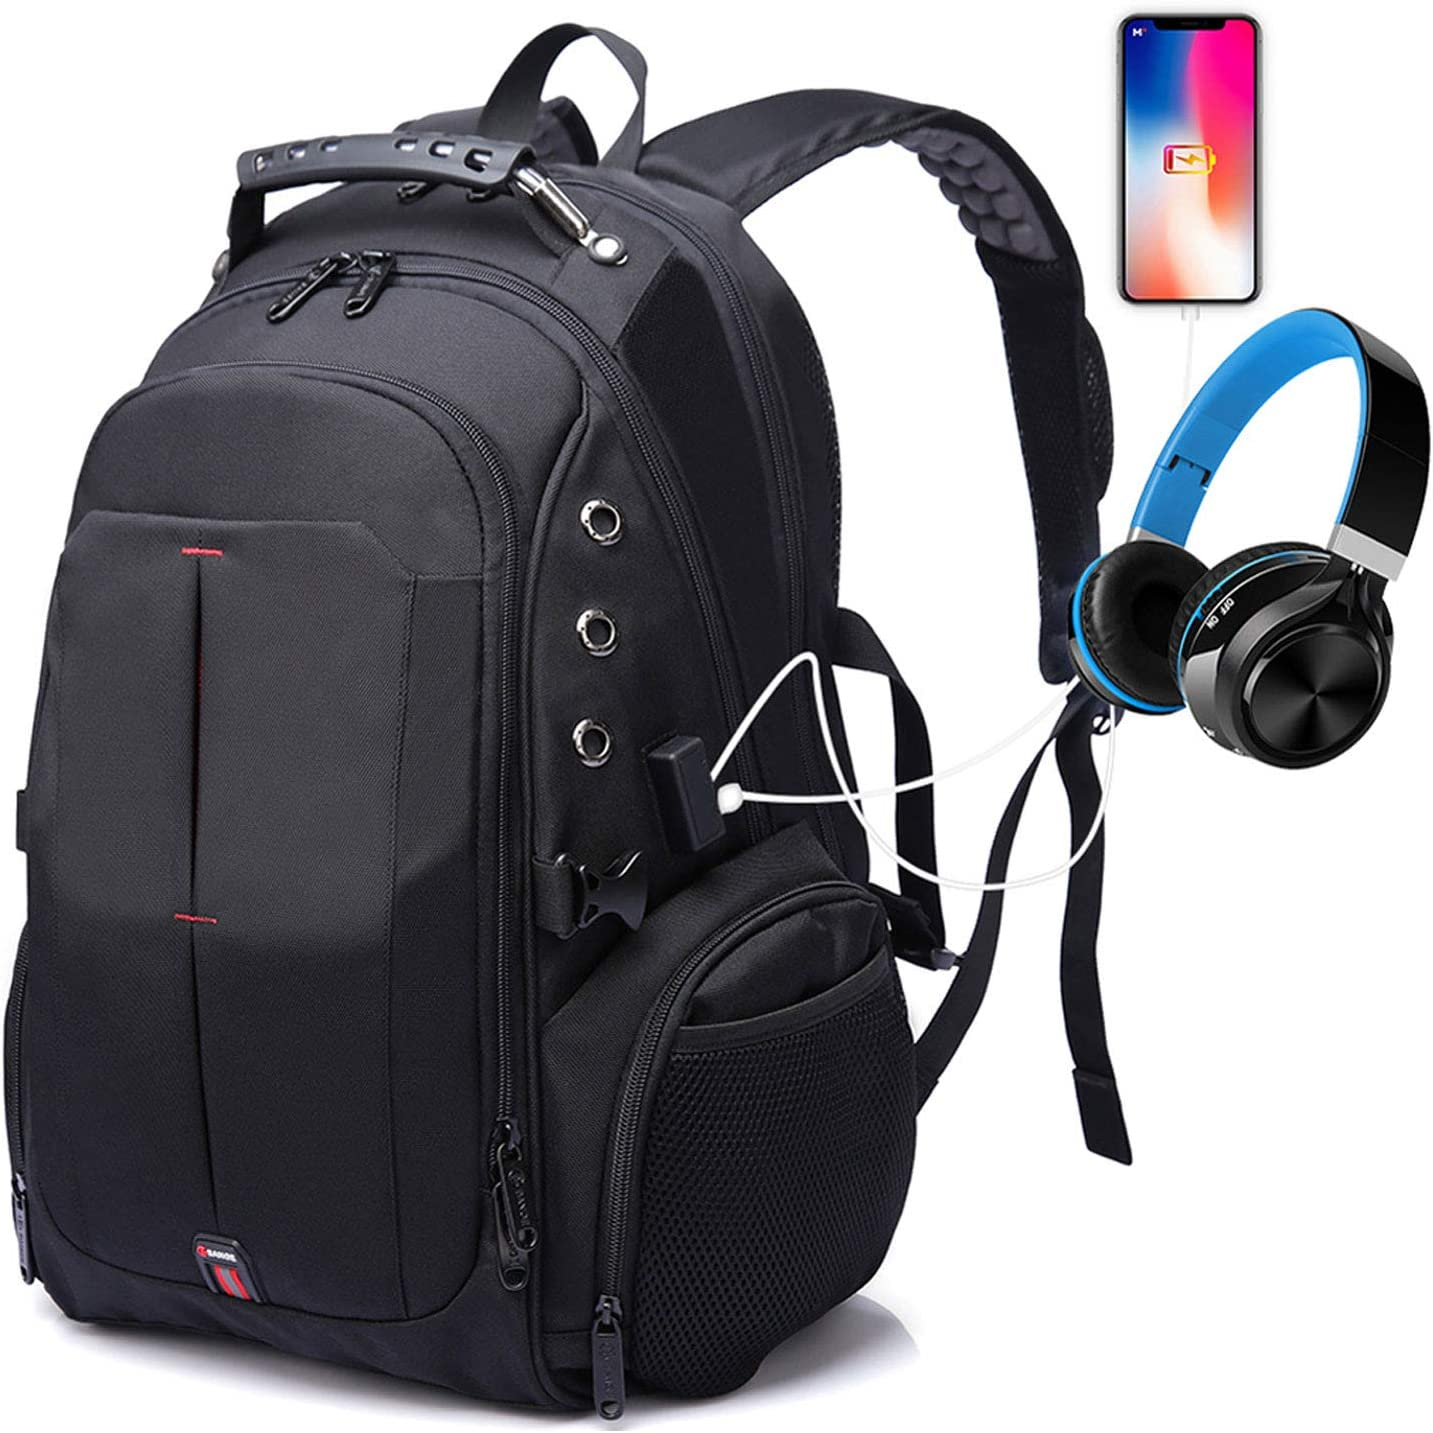 Large Travel Laptop Backpack, Anti Theft 17 Inch Bags with USB Charging Port for Men&Women,TSA Charger Backpack with Luggage Strap